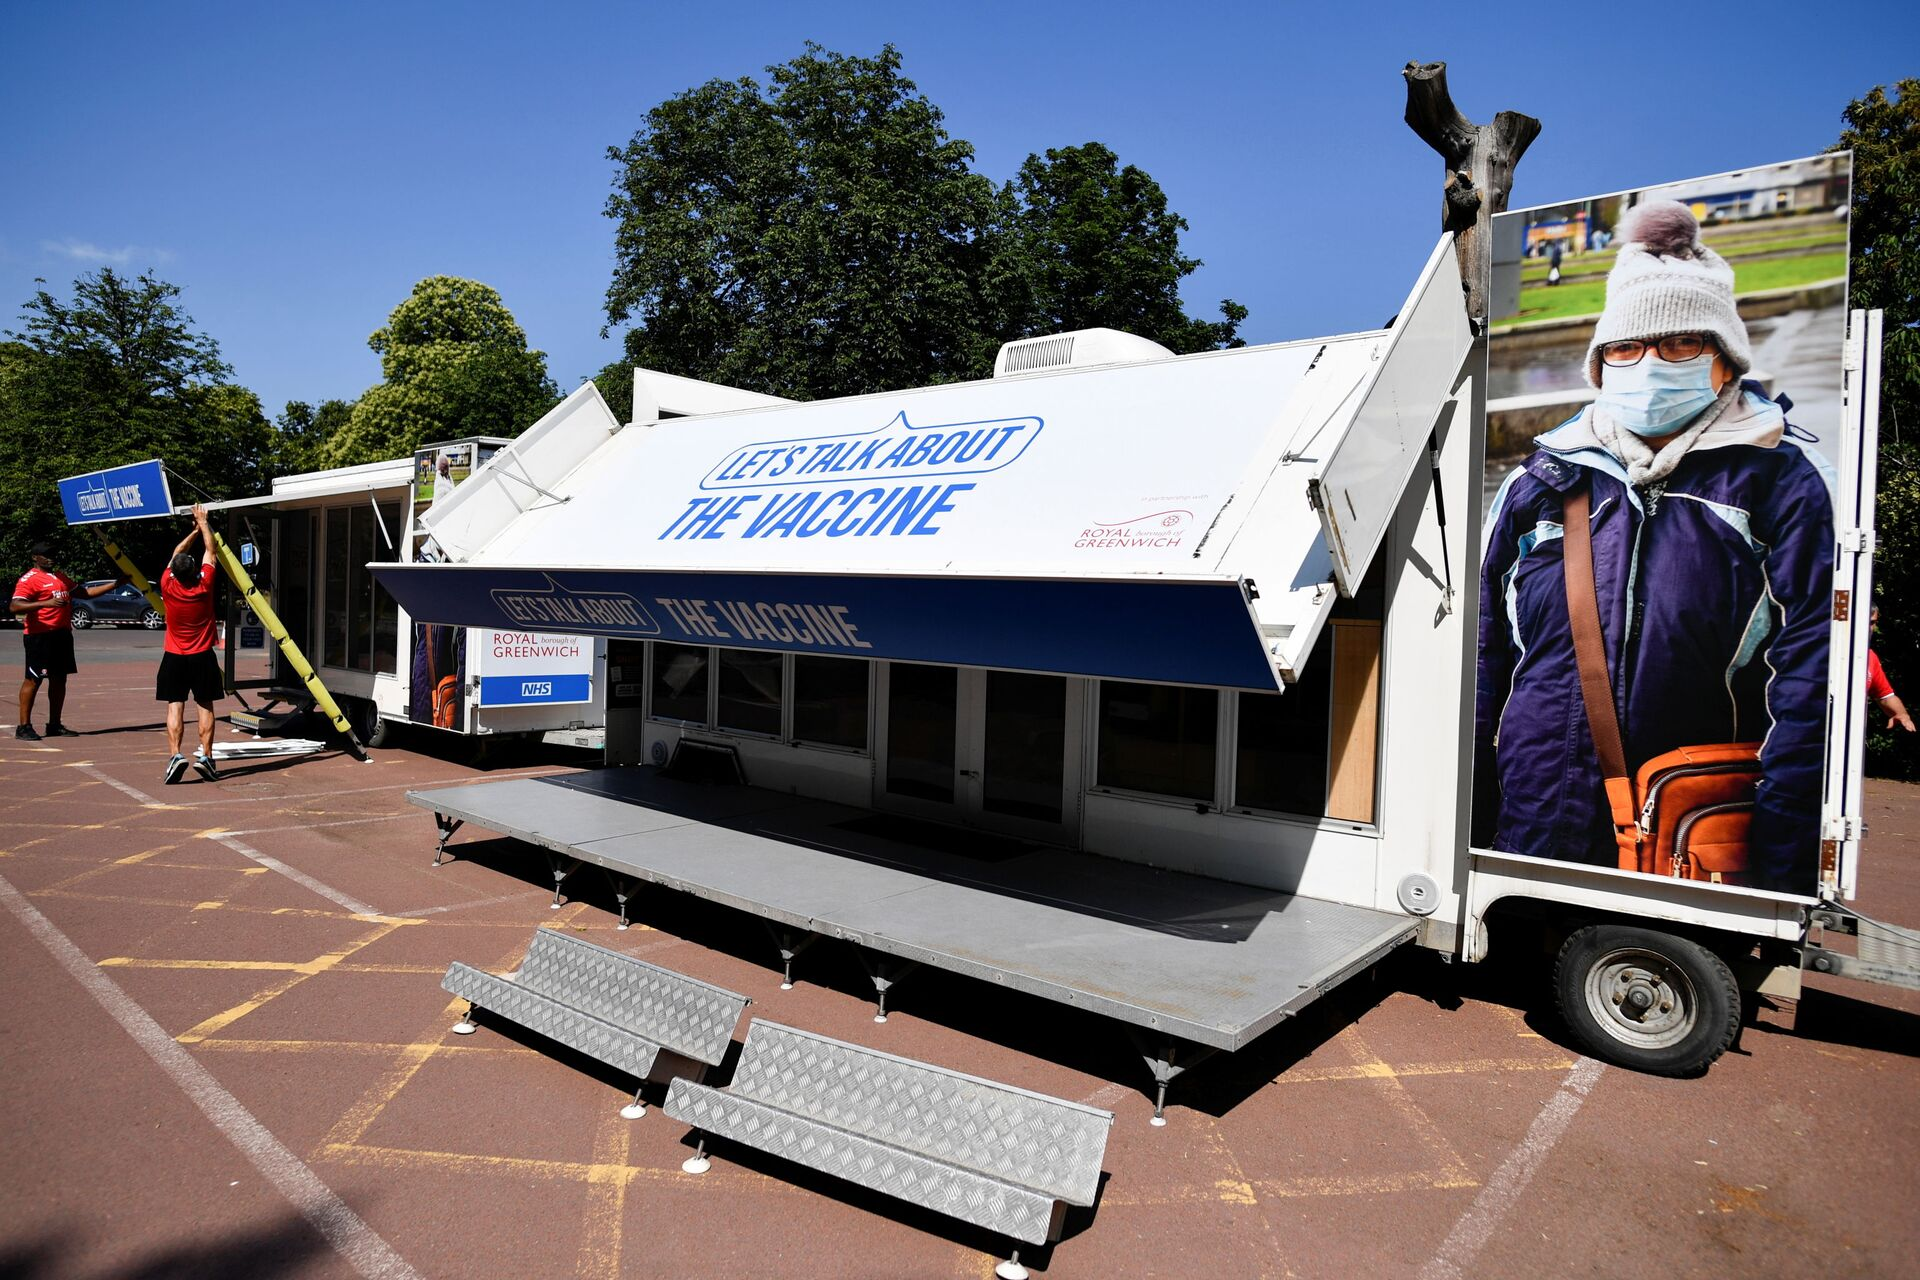 People set up a vaccination centre in Greenwich park, amid the coronavirus disease (COVID-19) outbreak, in London, Britain, July 18, 2021 - Sputnik International, 1920, 07.09.2021